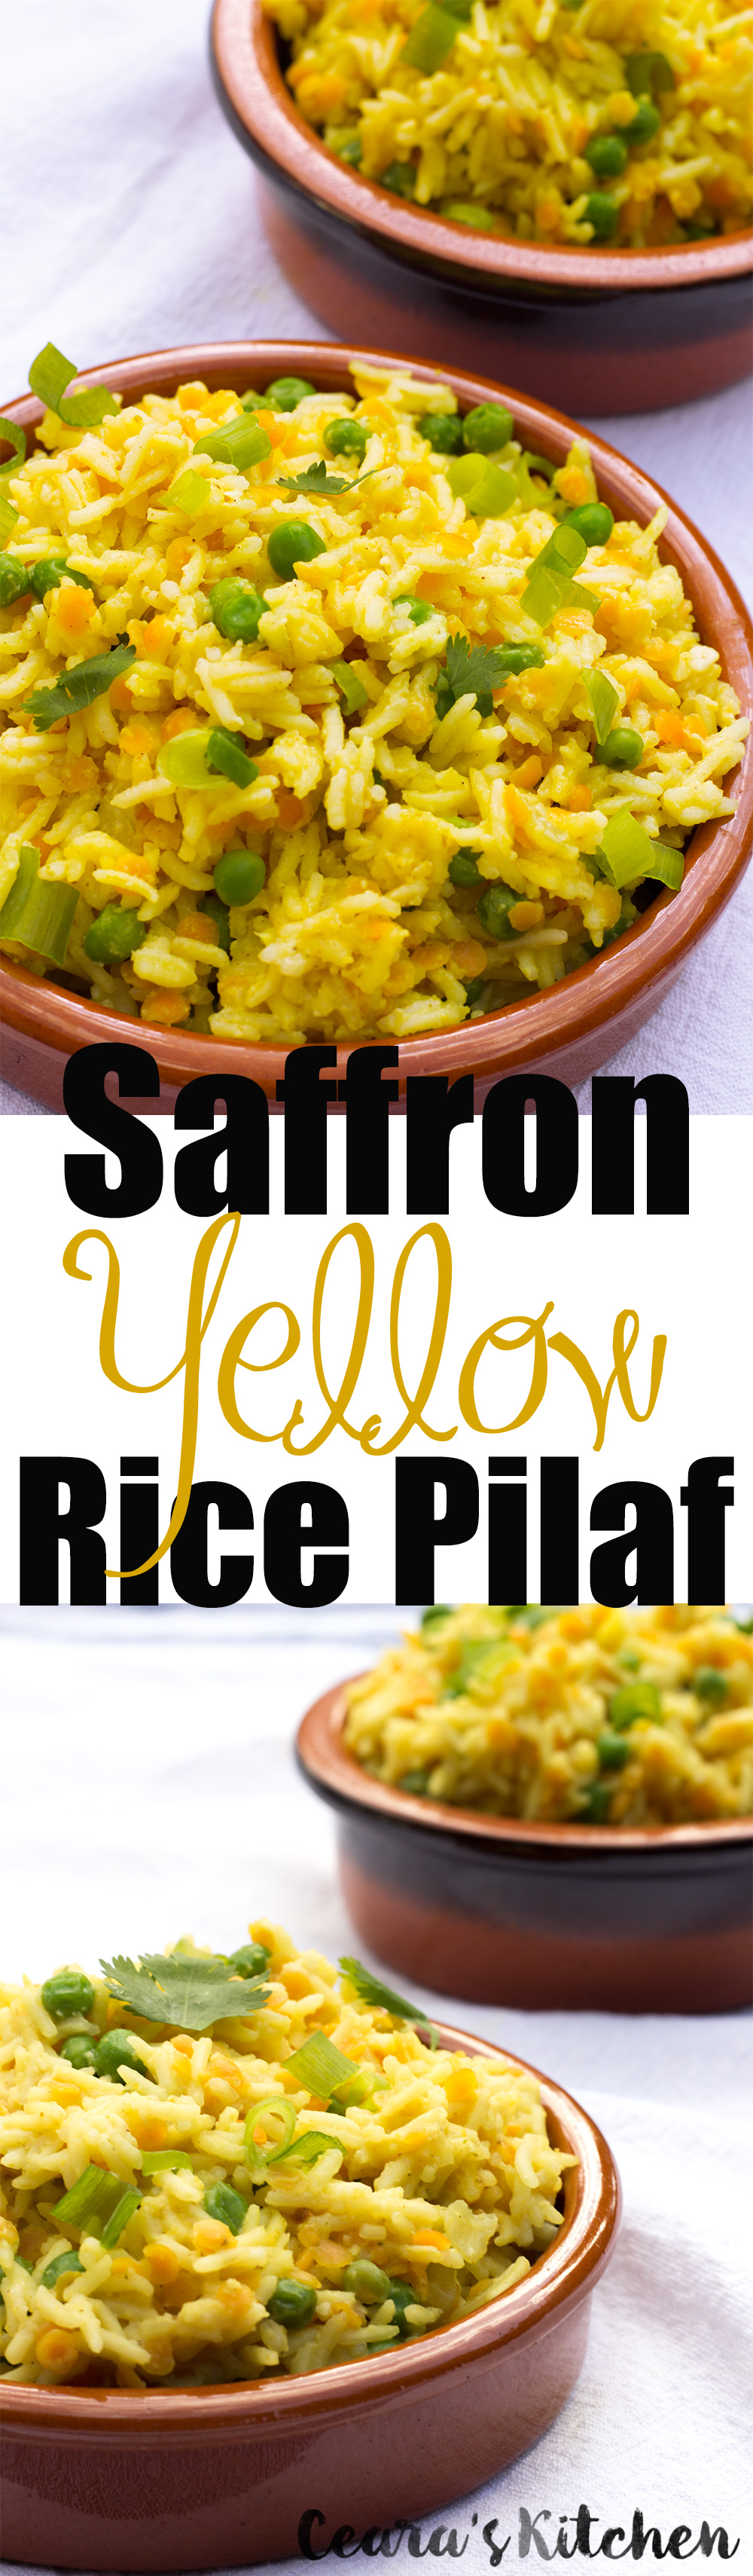 Indian Saffron Yellow Rice Vegan Gluten Free Healthy recipe